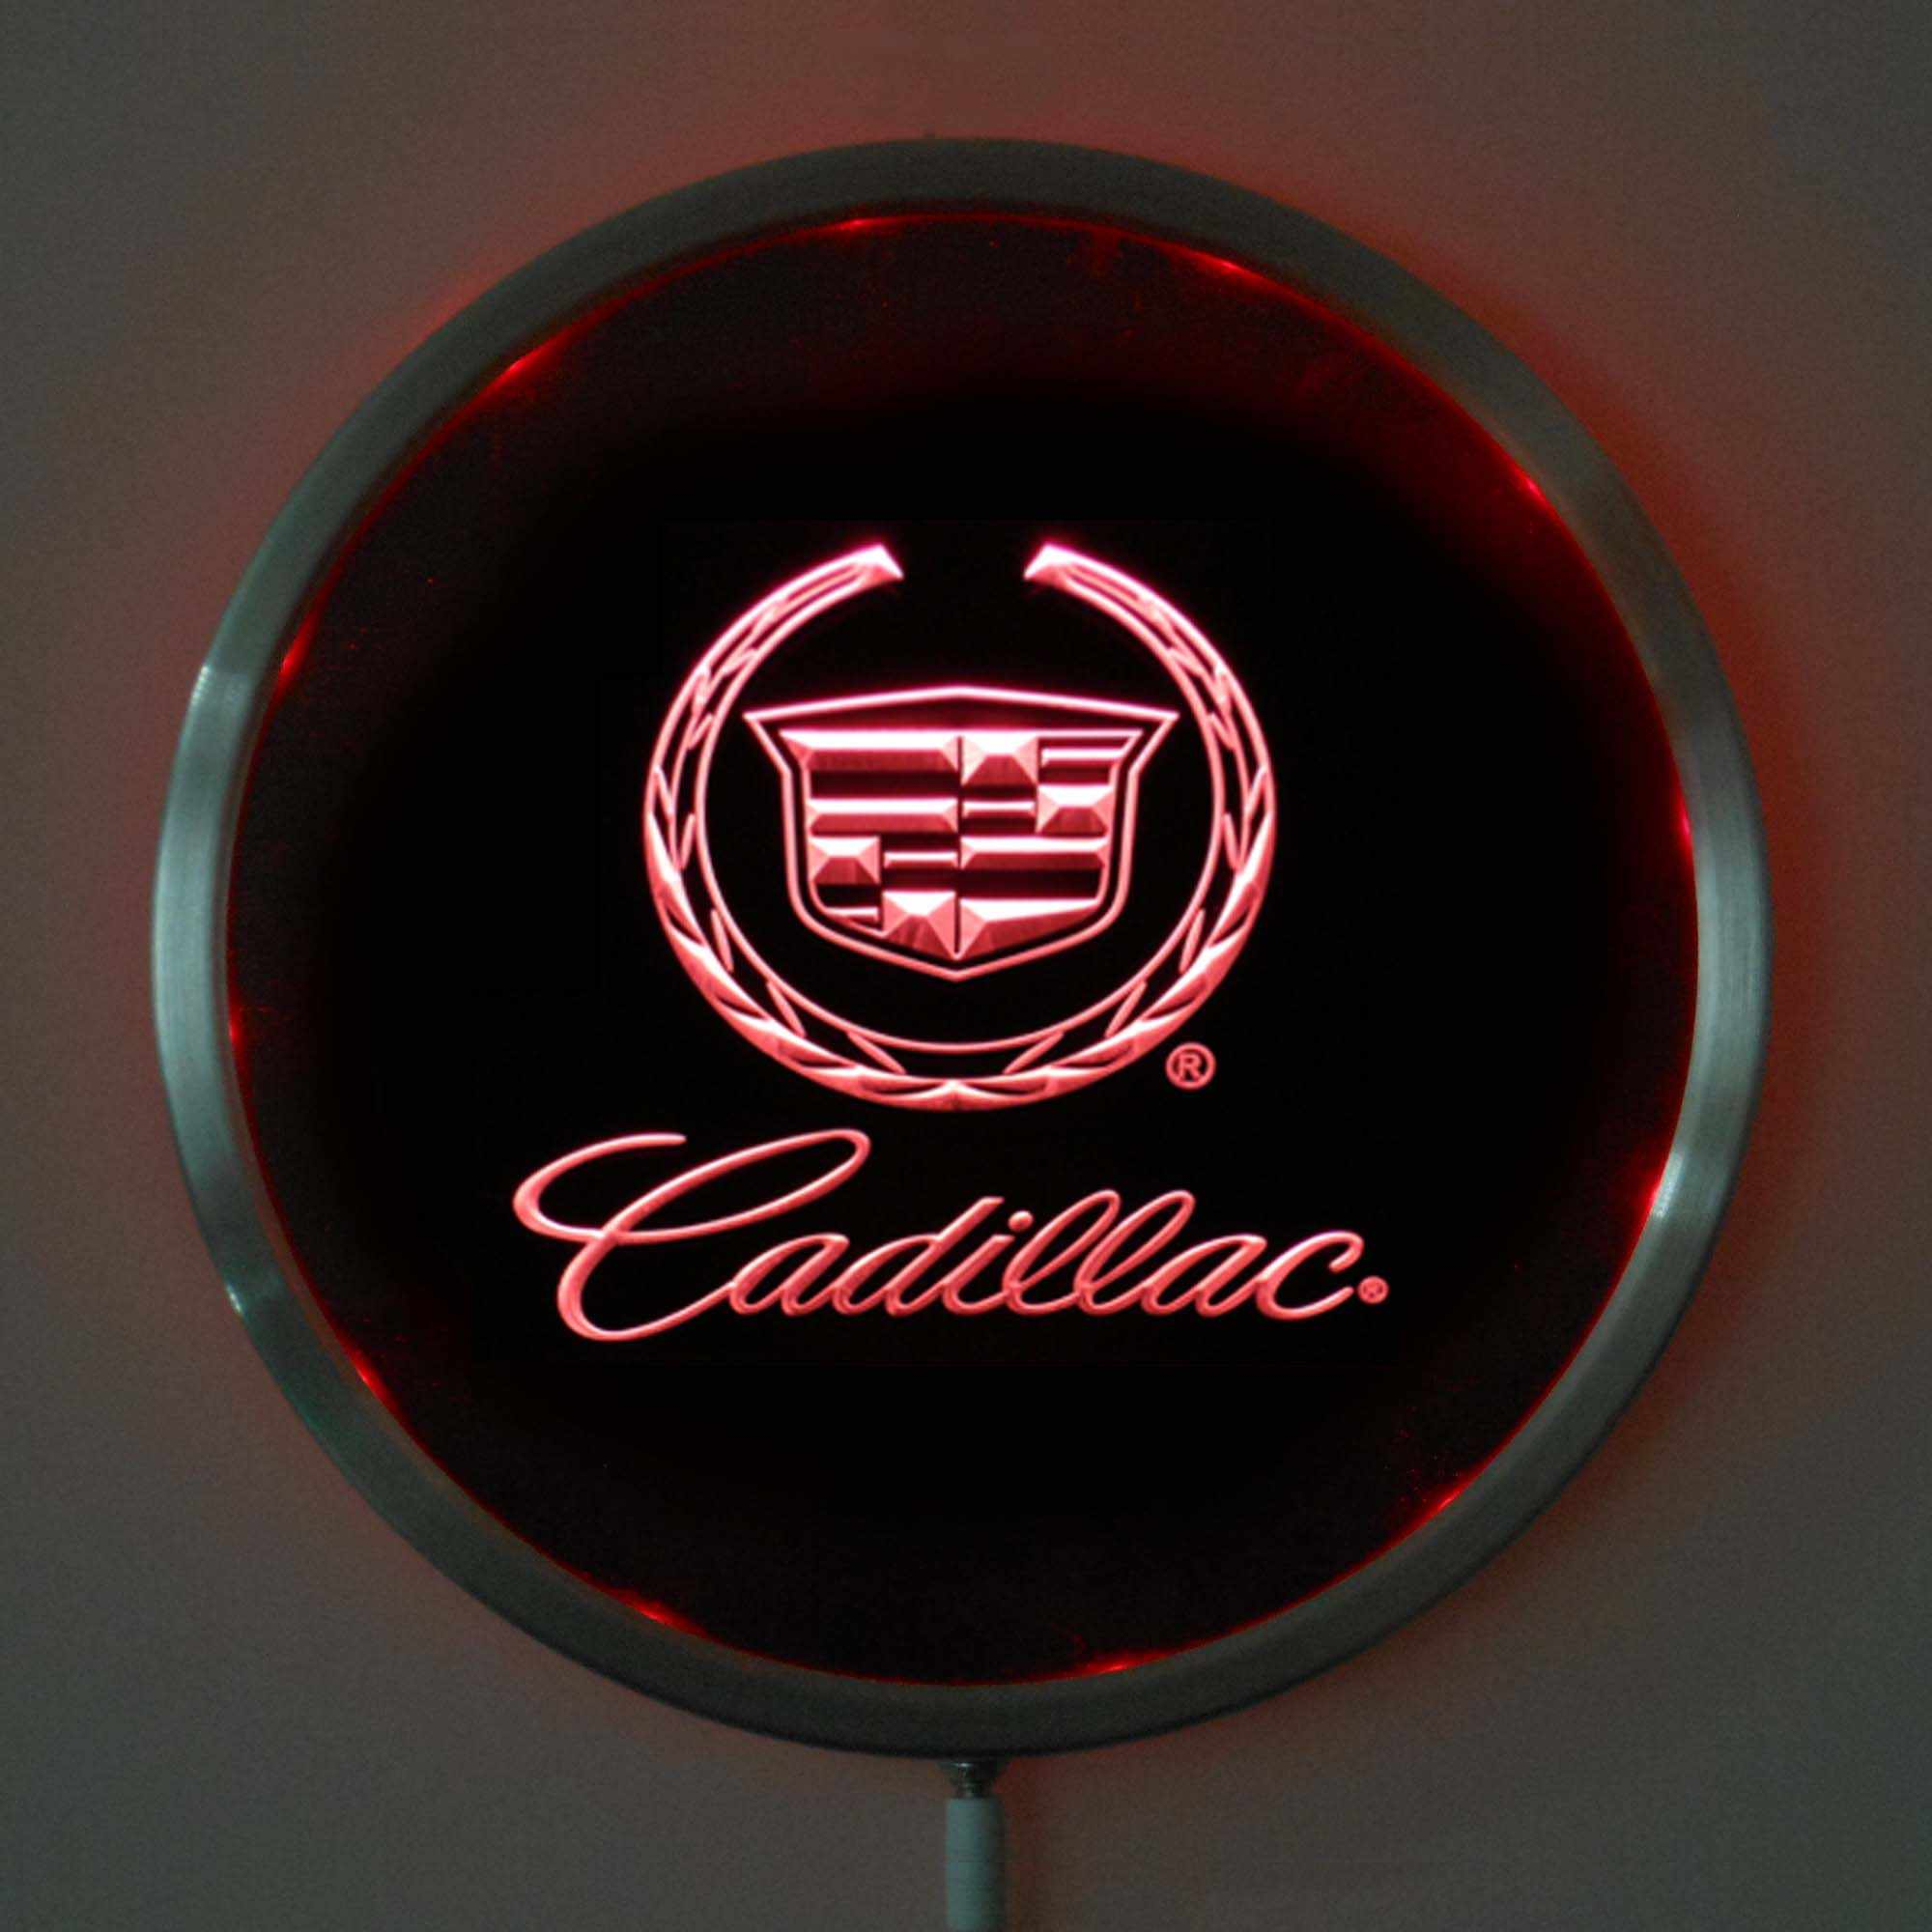 Rs-d0041 Cadillac LED Neon Licht Ronde Signss 25 cm/10 Inch-Bar Borden met RGB Multi-color remote Wireless Control Functie